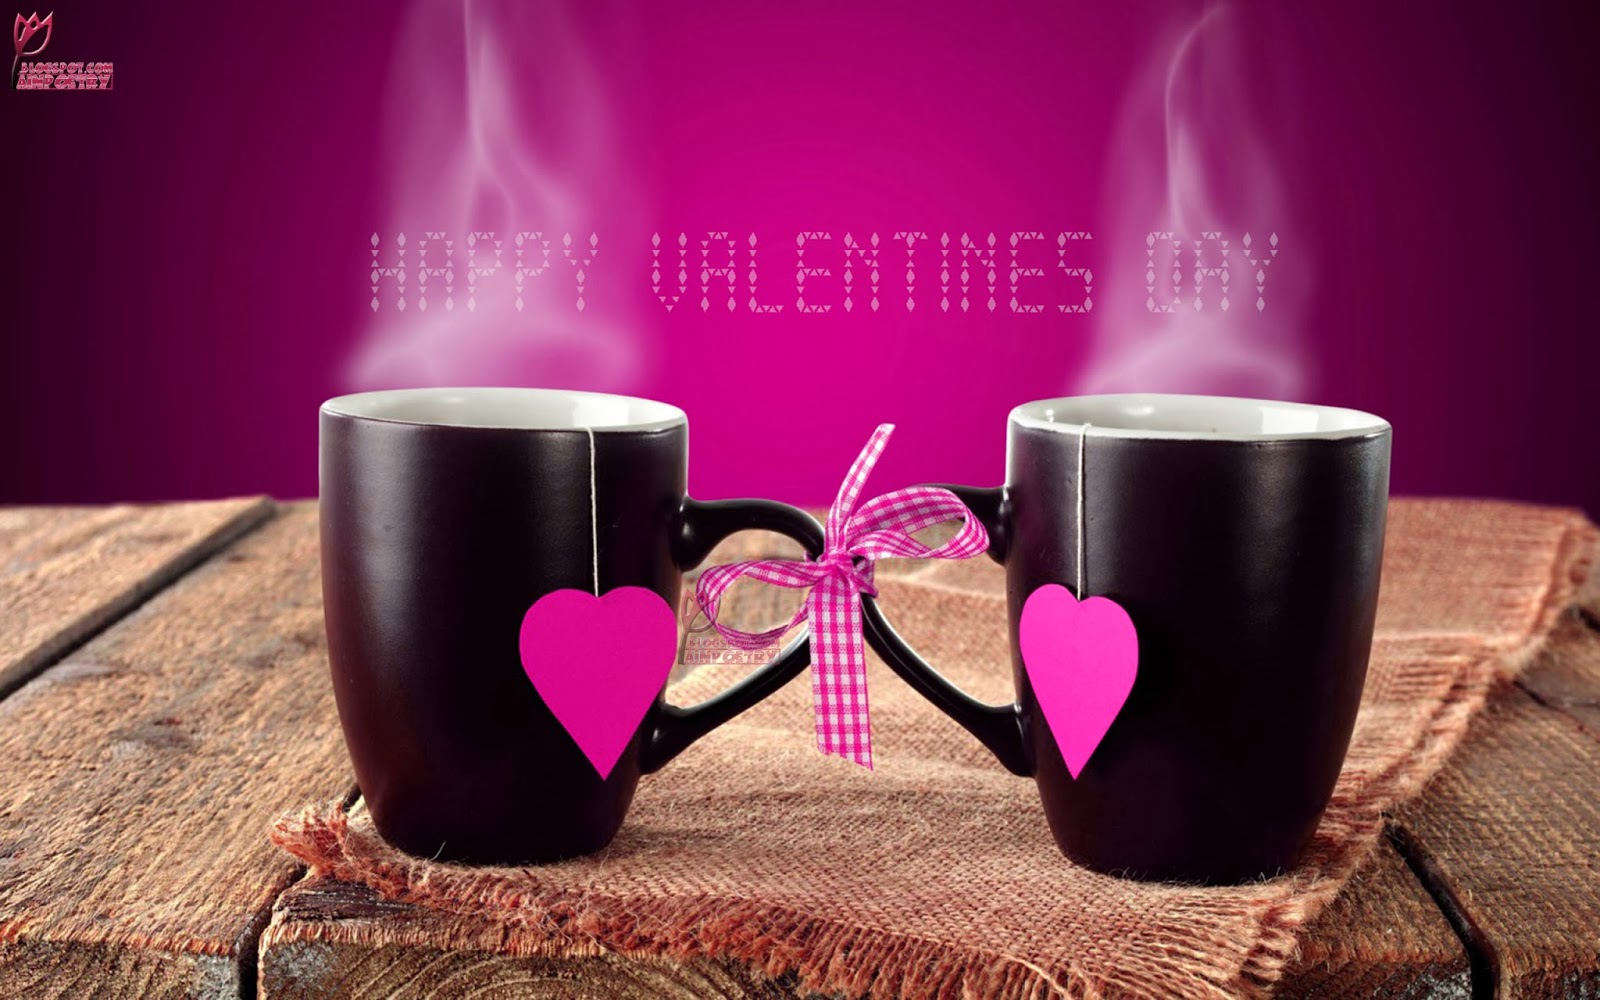 Happy-Valentines-Day-Sweet-Morning-Wallpaper-With-Lovers-Cups-HD